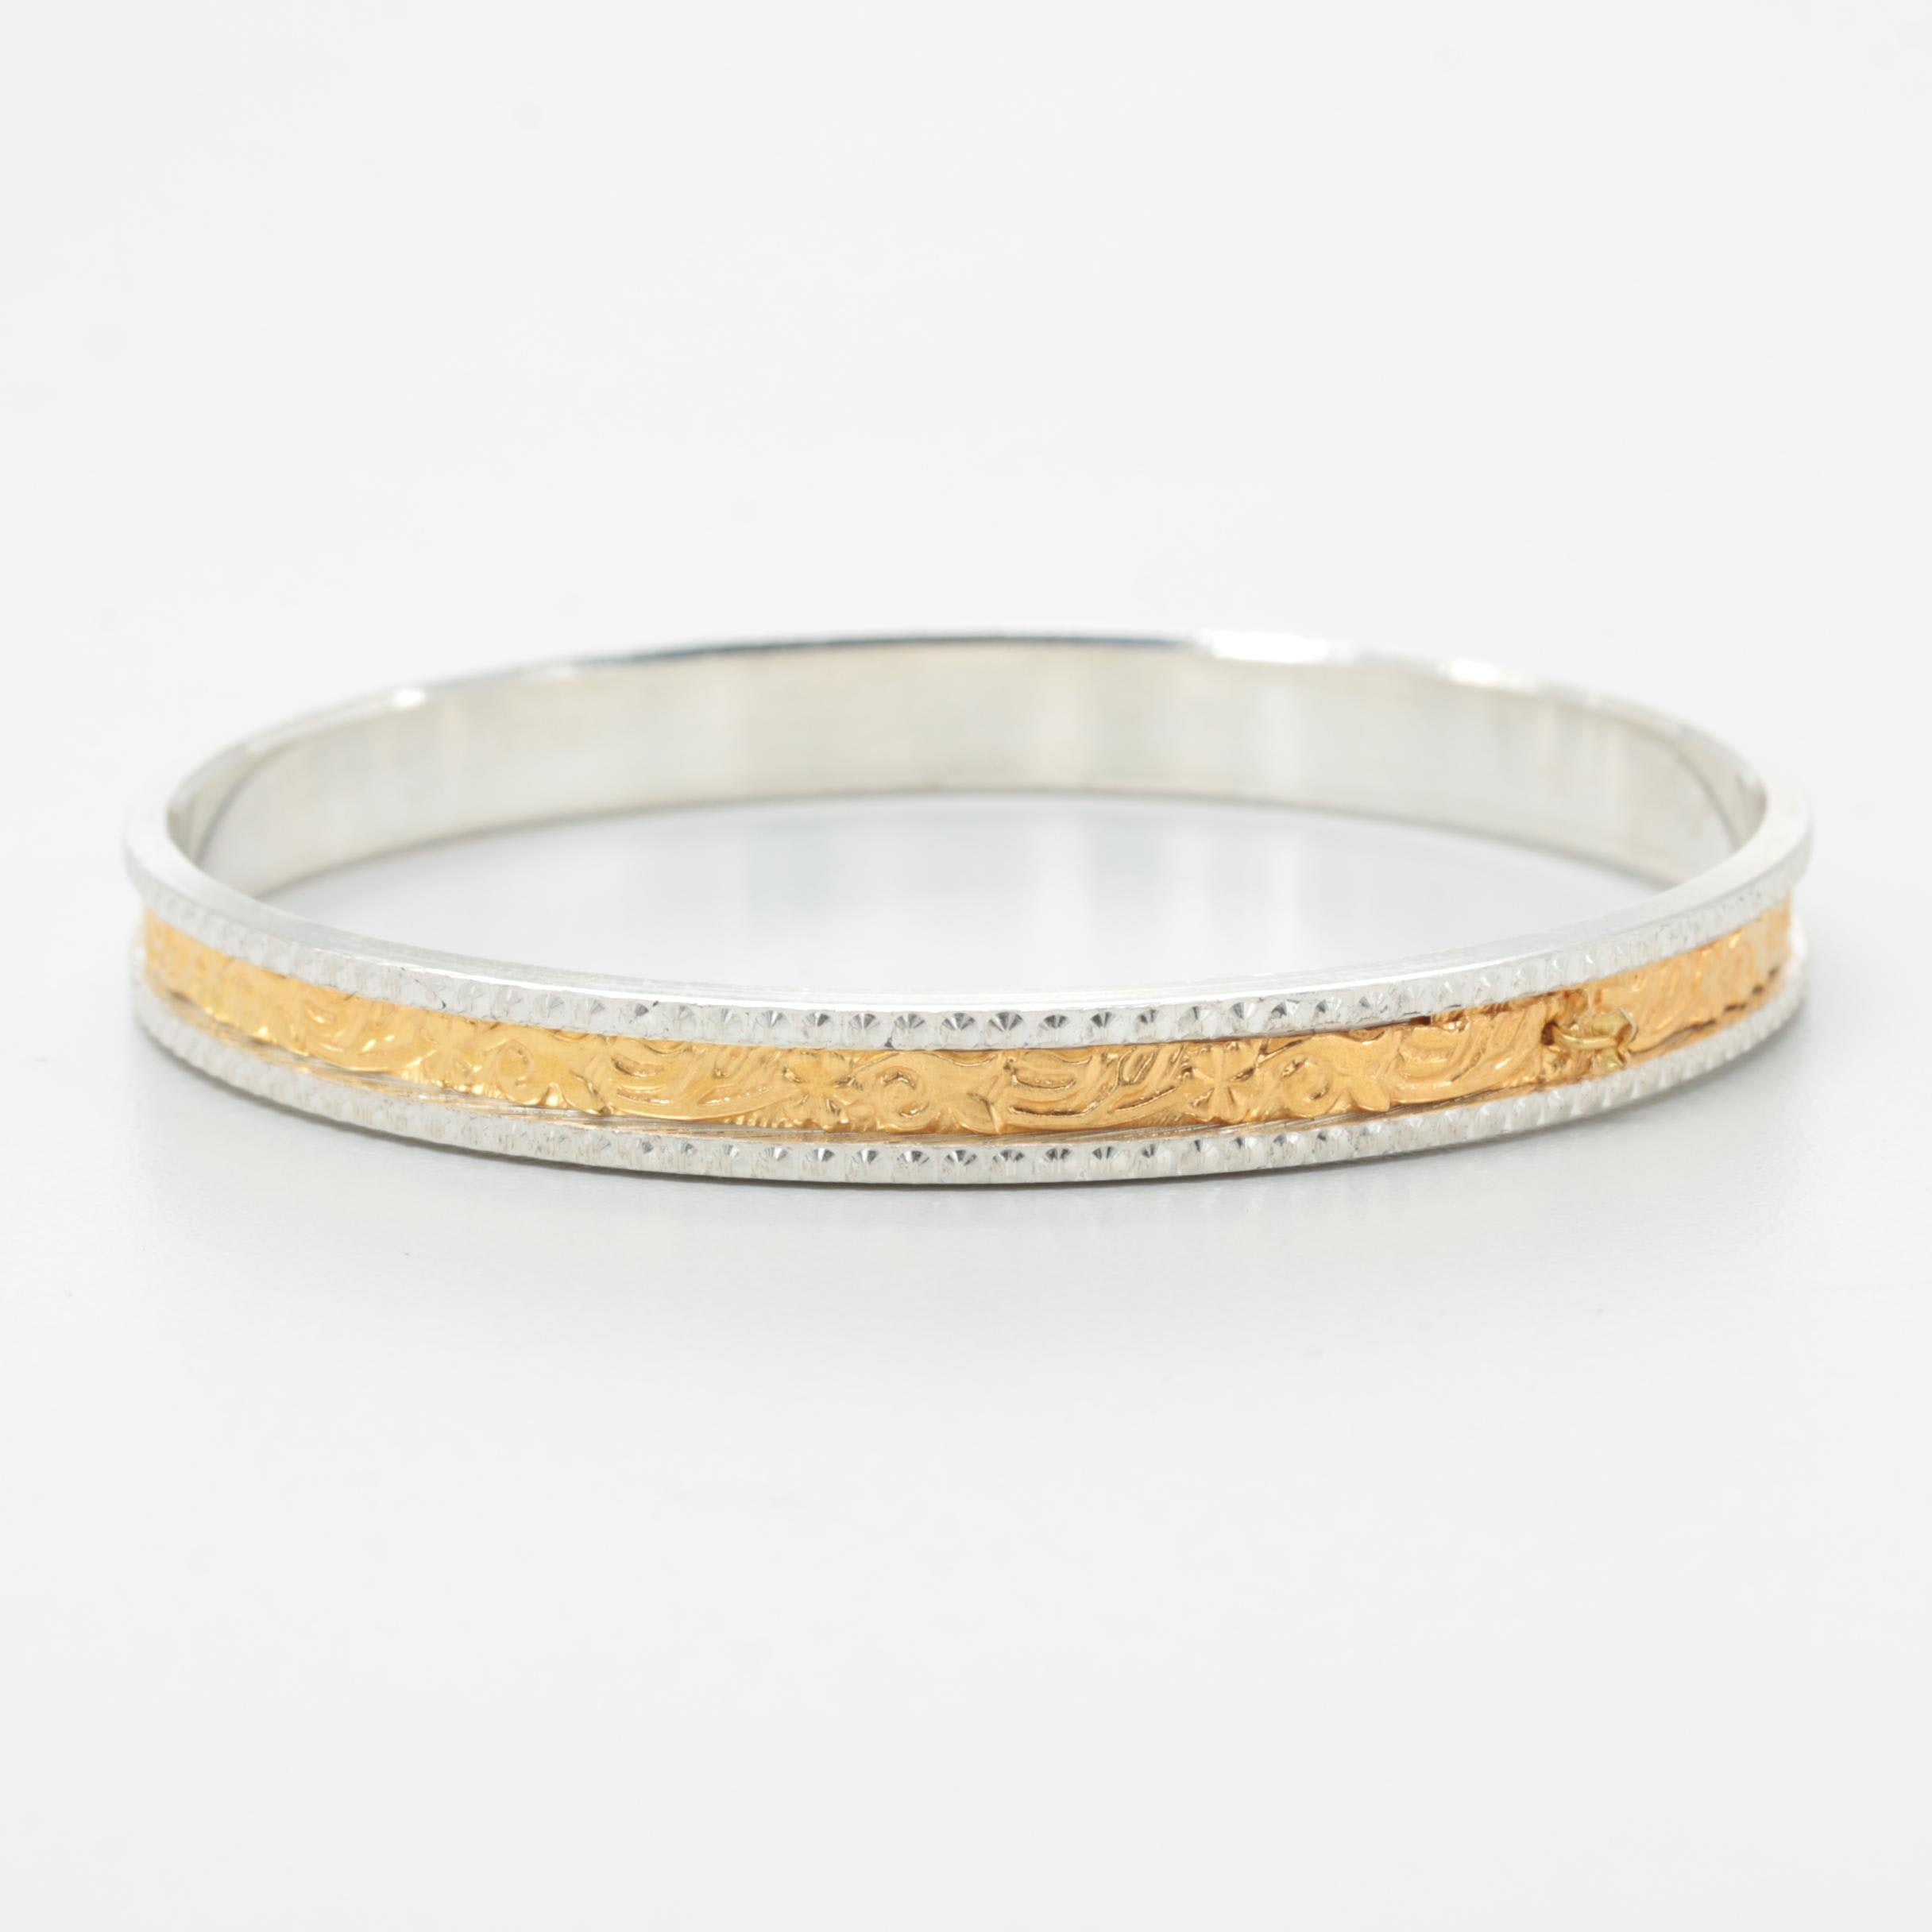 Sterling Silver and 10K Yellow Gold Bangle Bracelet